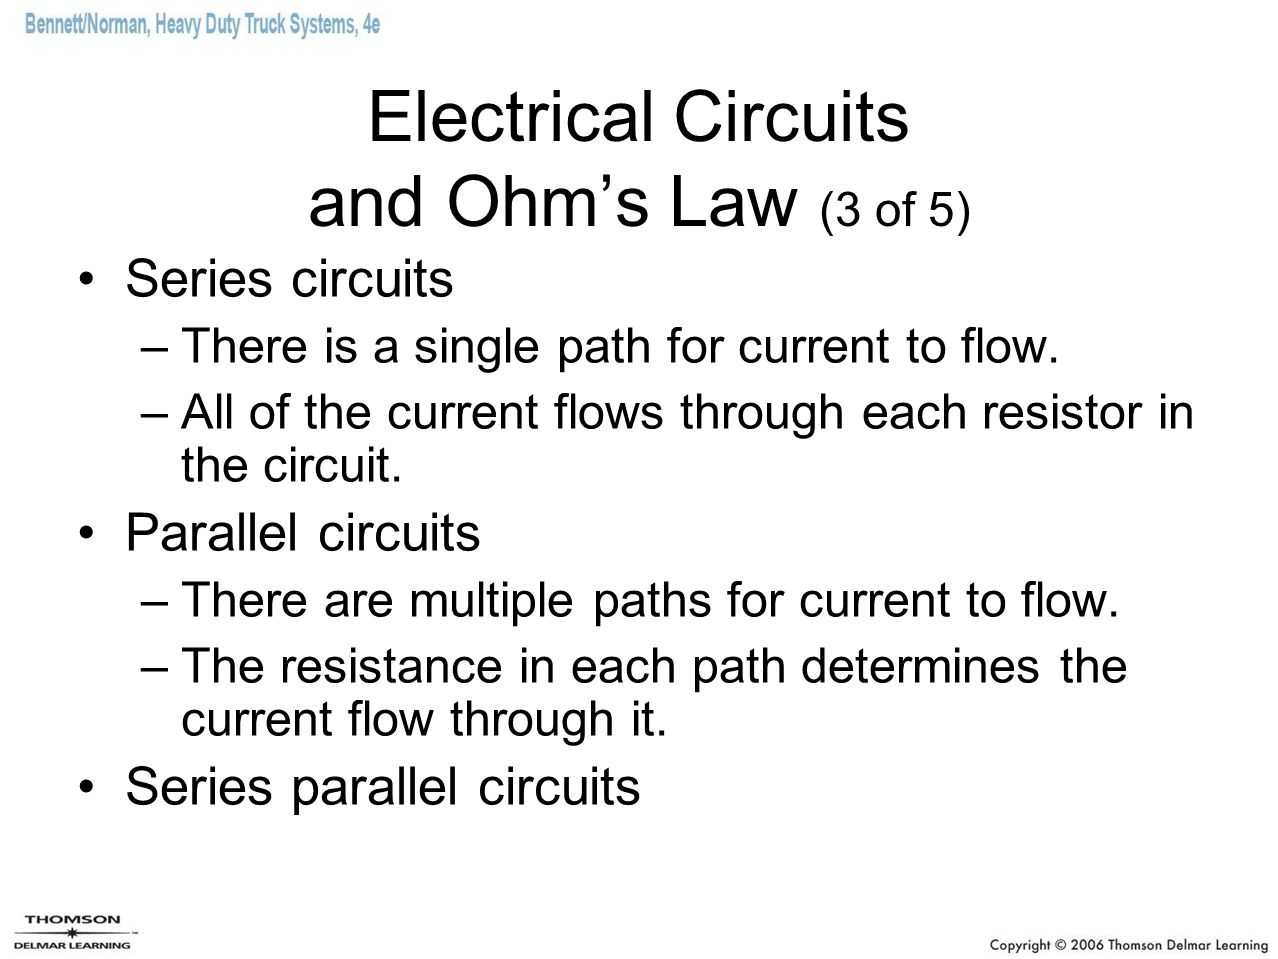 Electrical Circuits and Ohm's Law (3 of 5)